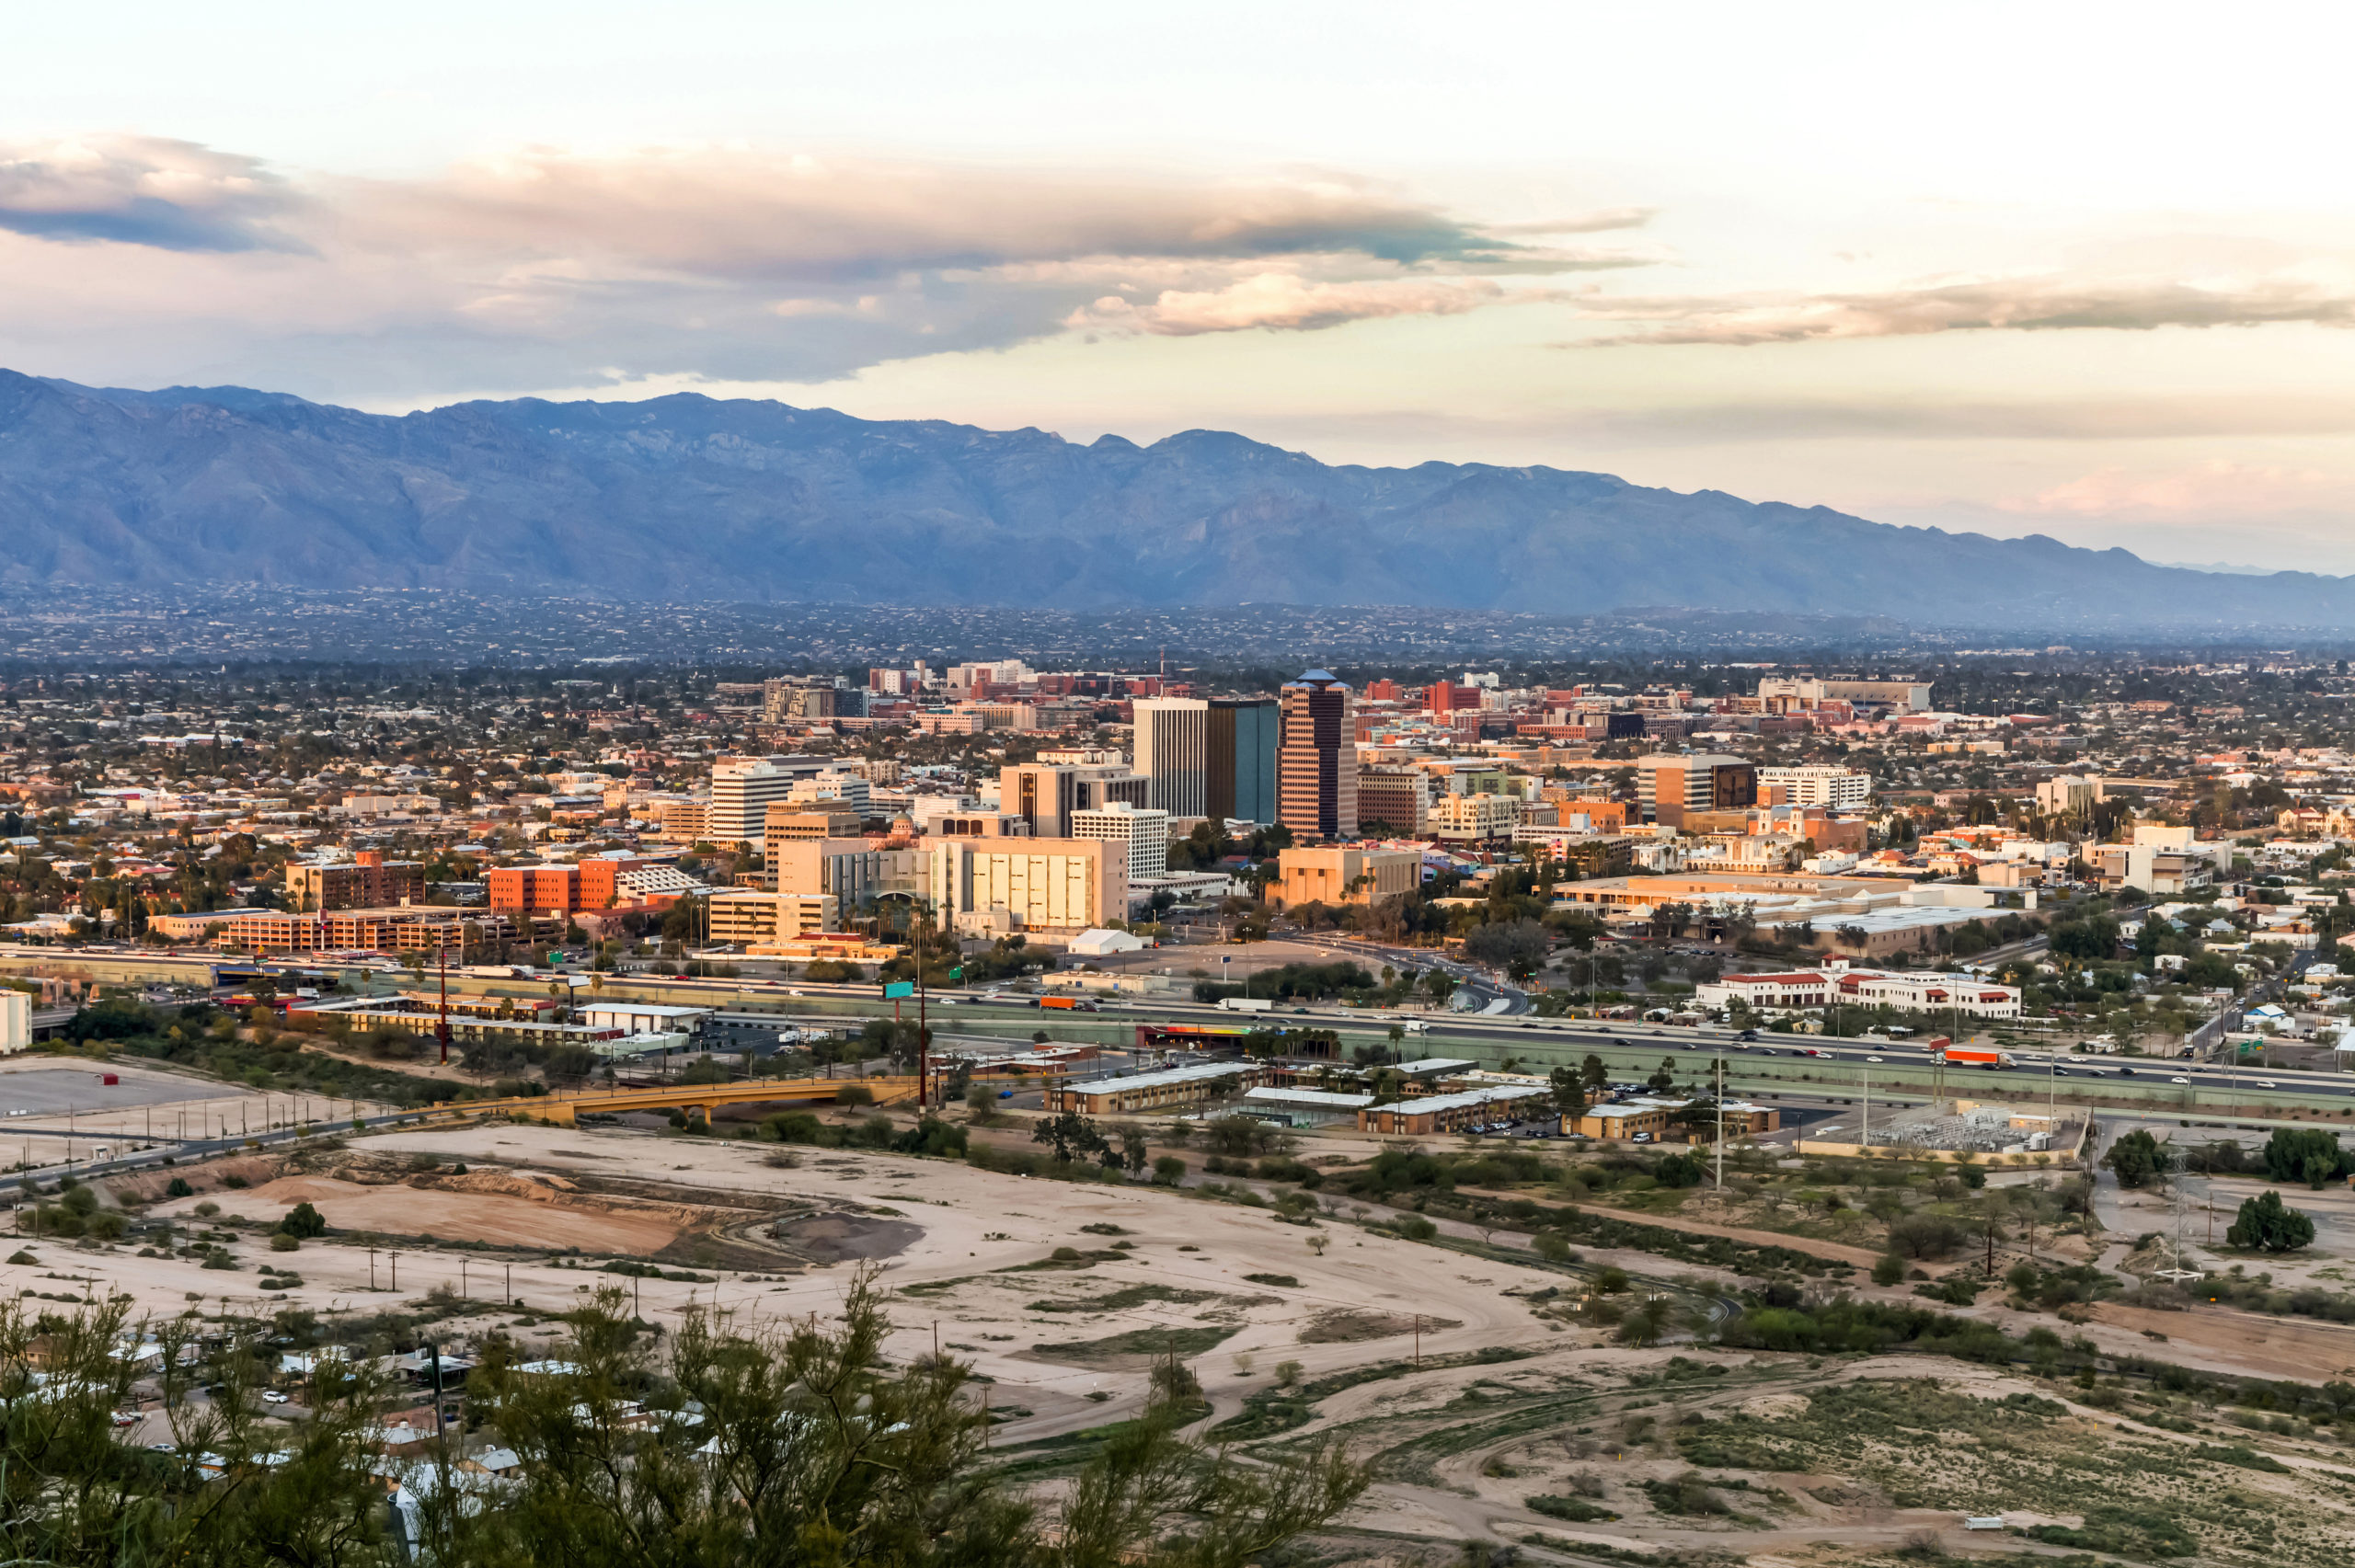 Tucson Skyline Downtown and Santa Catalina Mountains at Sunset